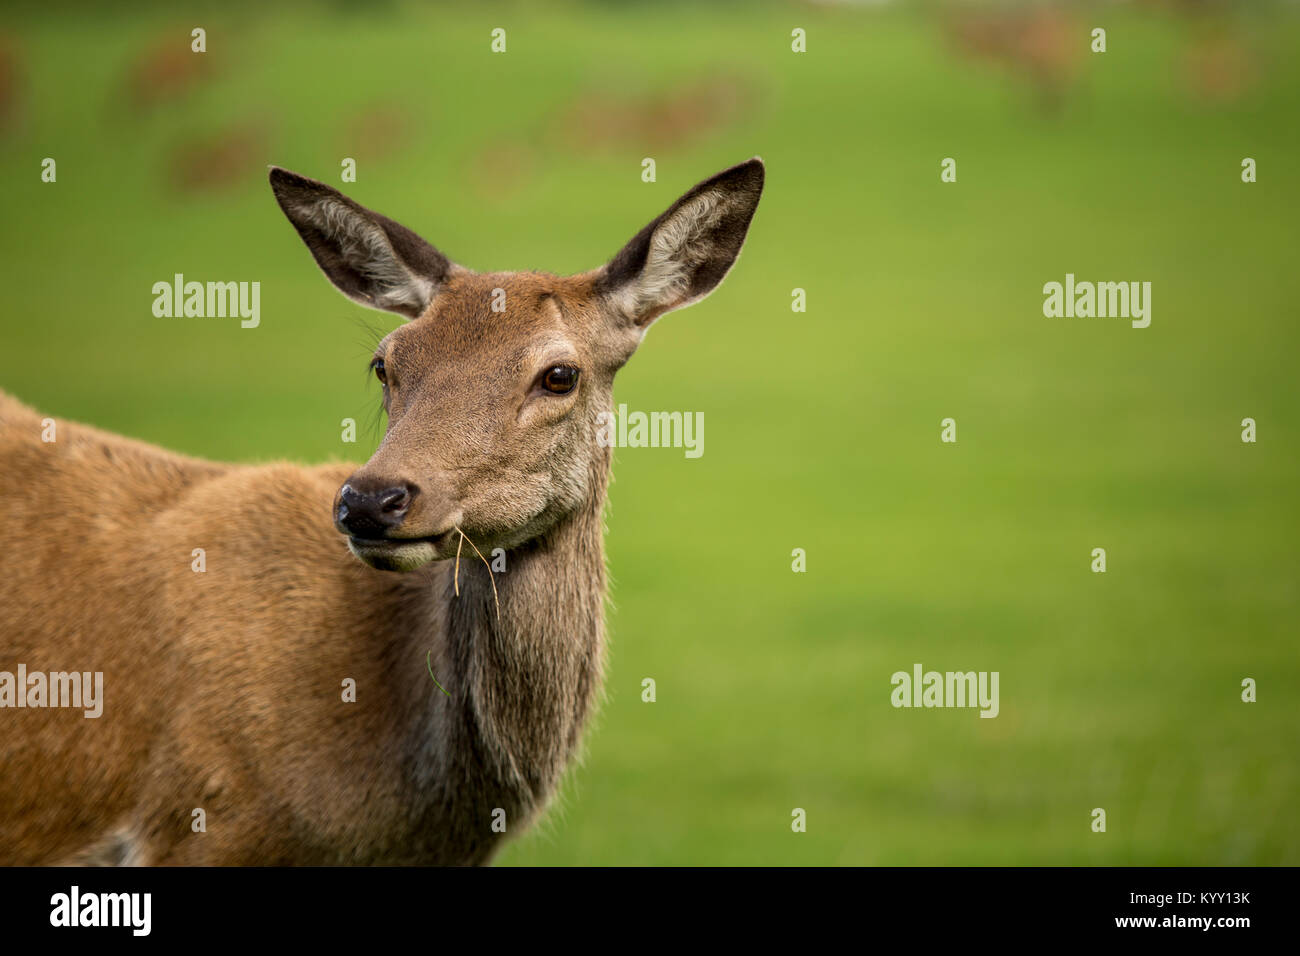 Close-up of deer at field - Stock Image